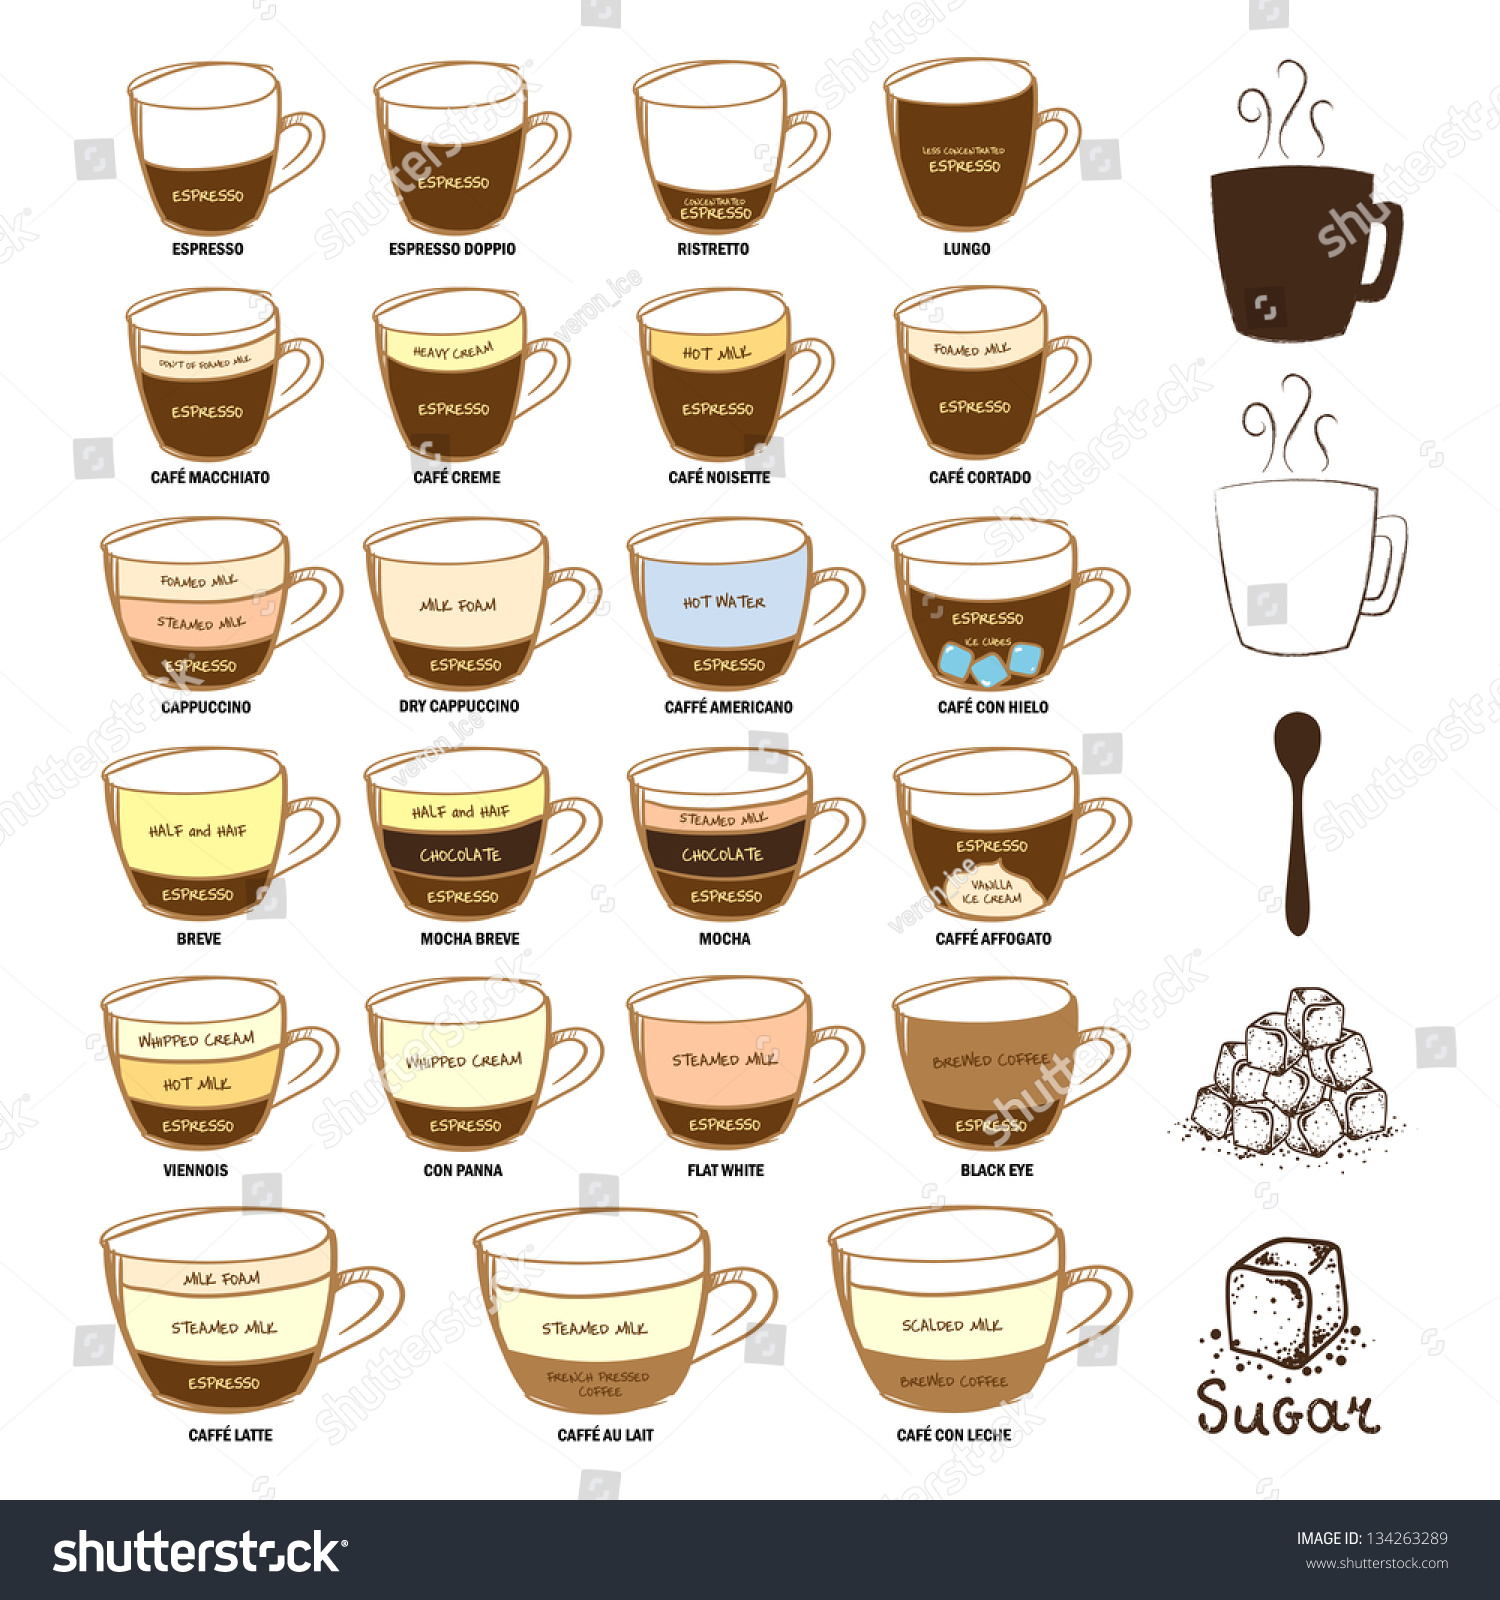 diagram types of coffee stock photo    shutterstockdiagram types of coffee preview  save to a lightbox